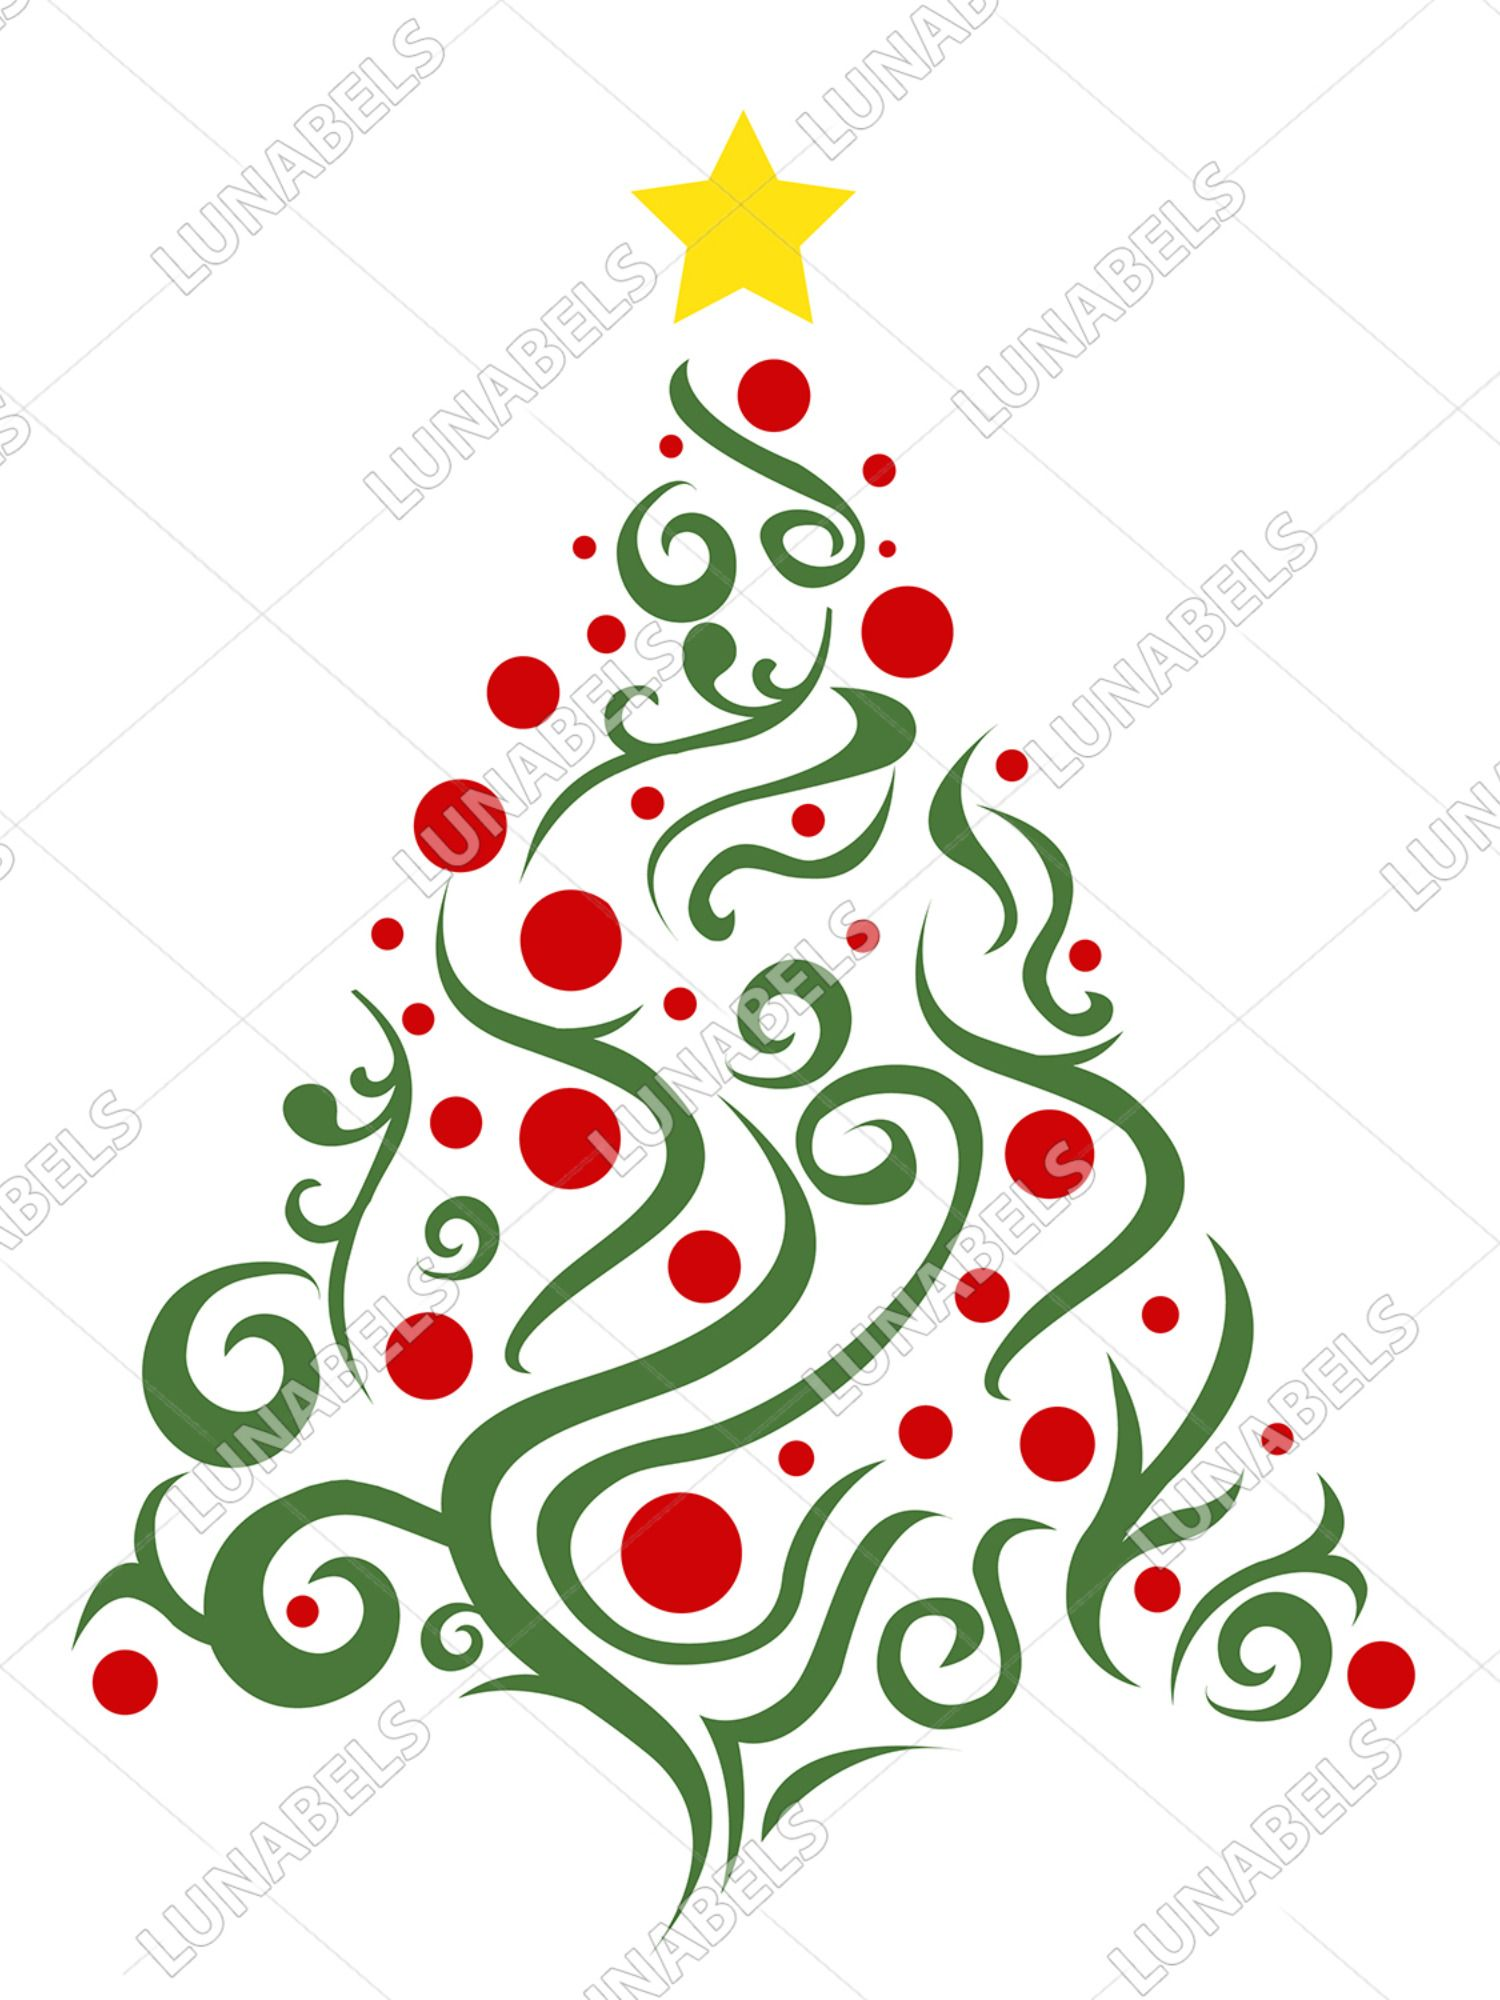 Christmas Tree Svg Christmas Tree Clipart Christmas Etsy In 2020 Christmas Tree Clipart Tree Svg Christmas Clipart